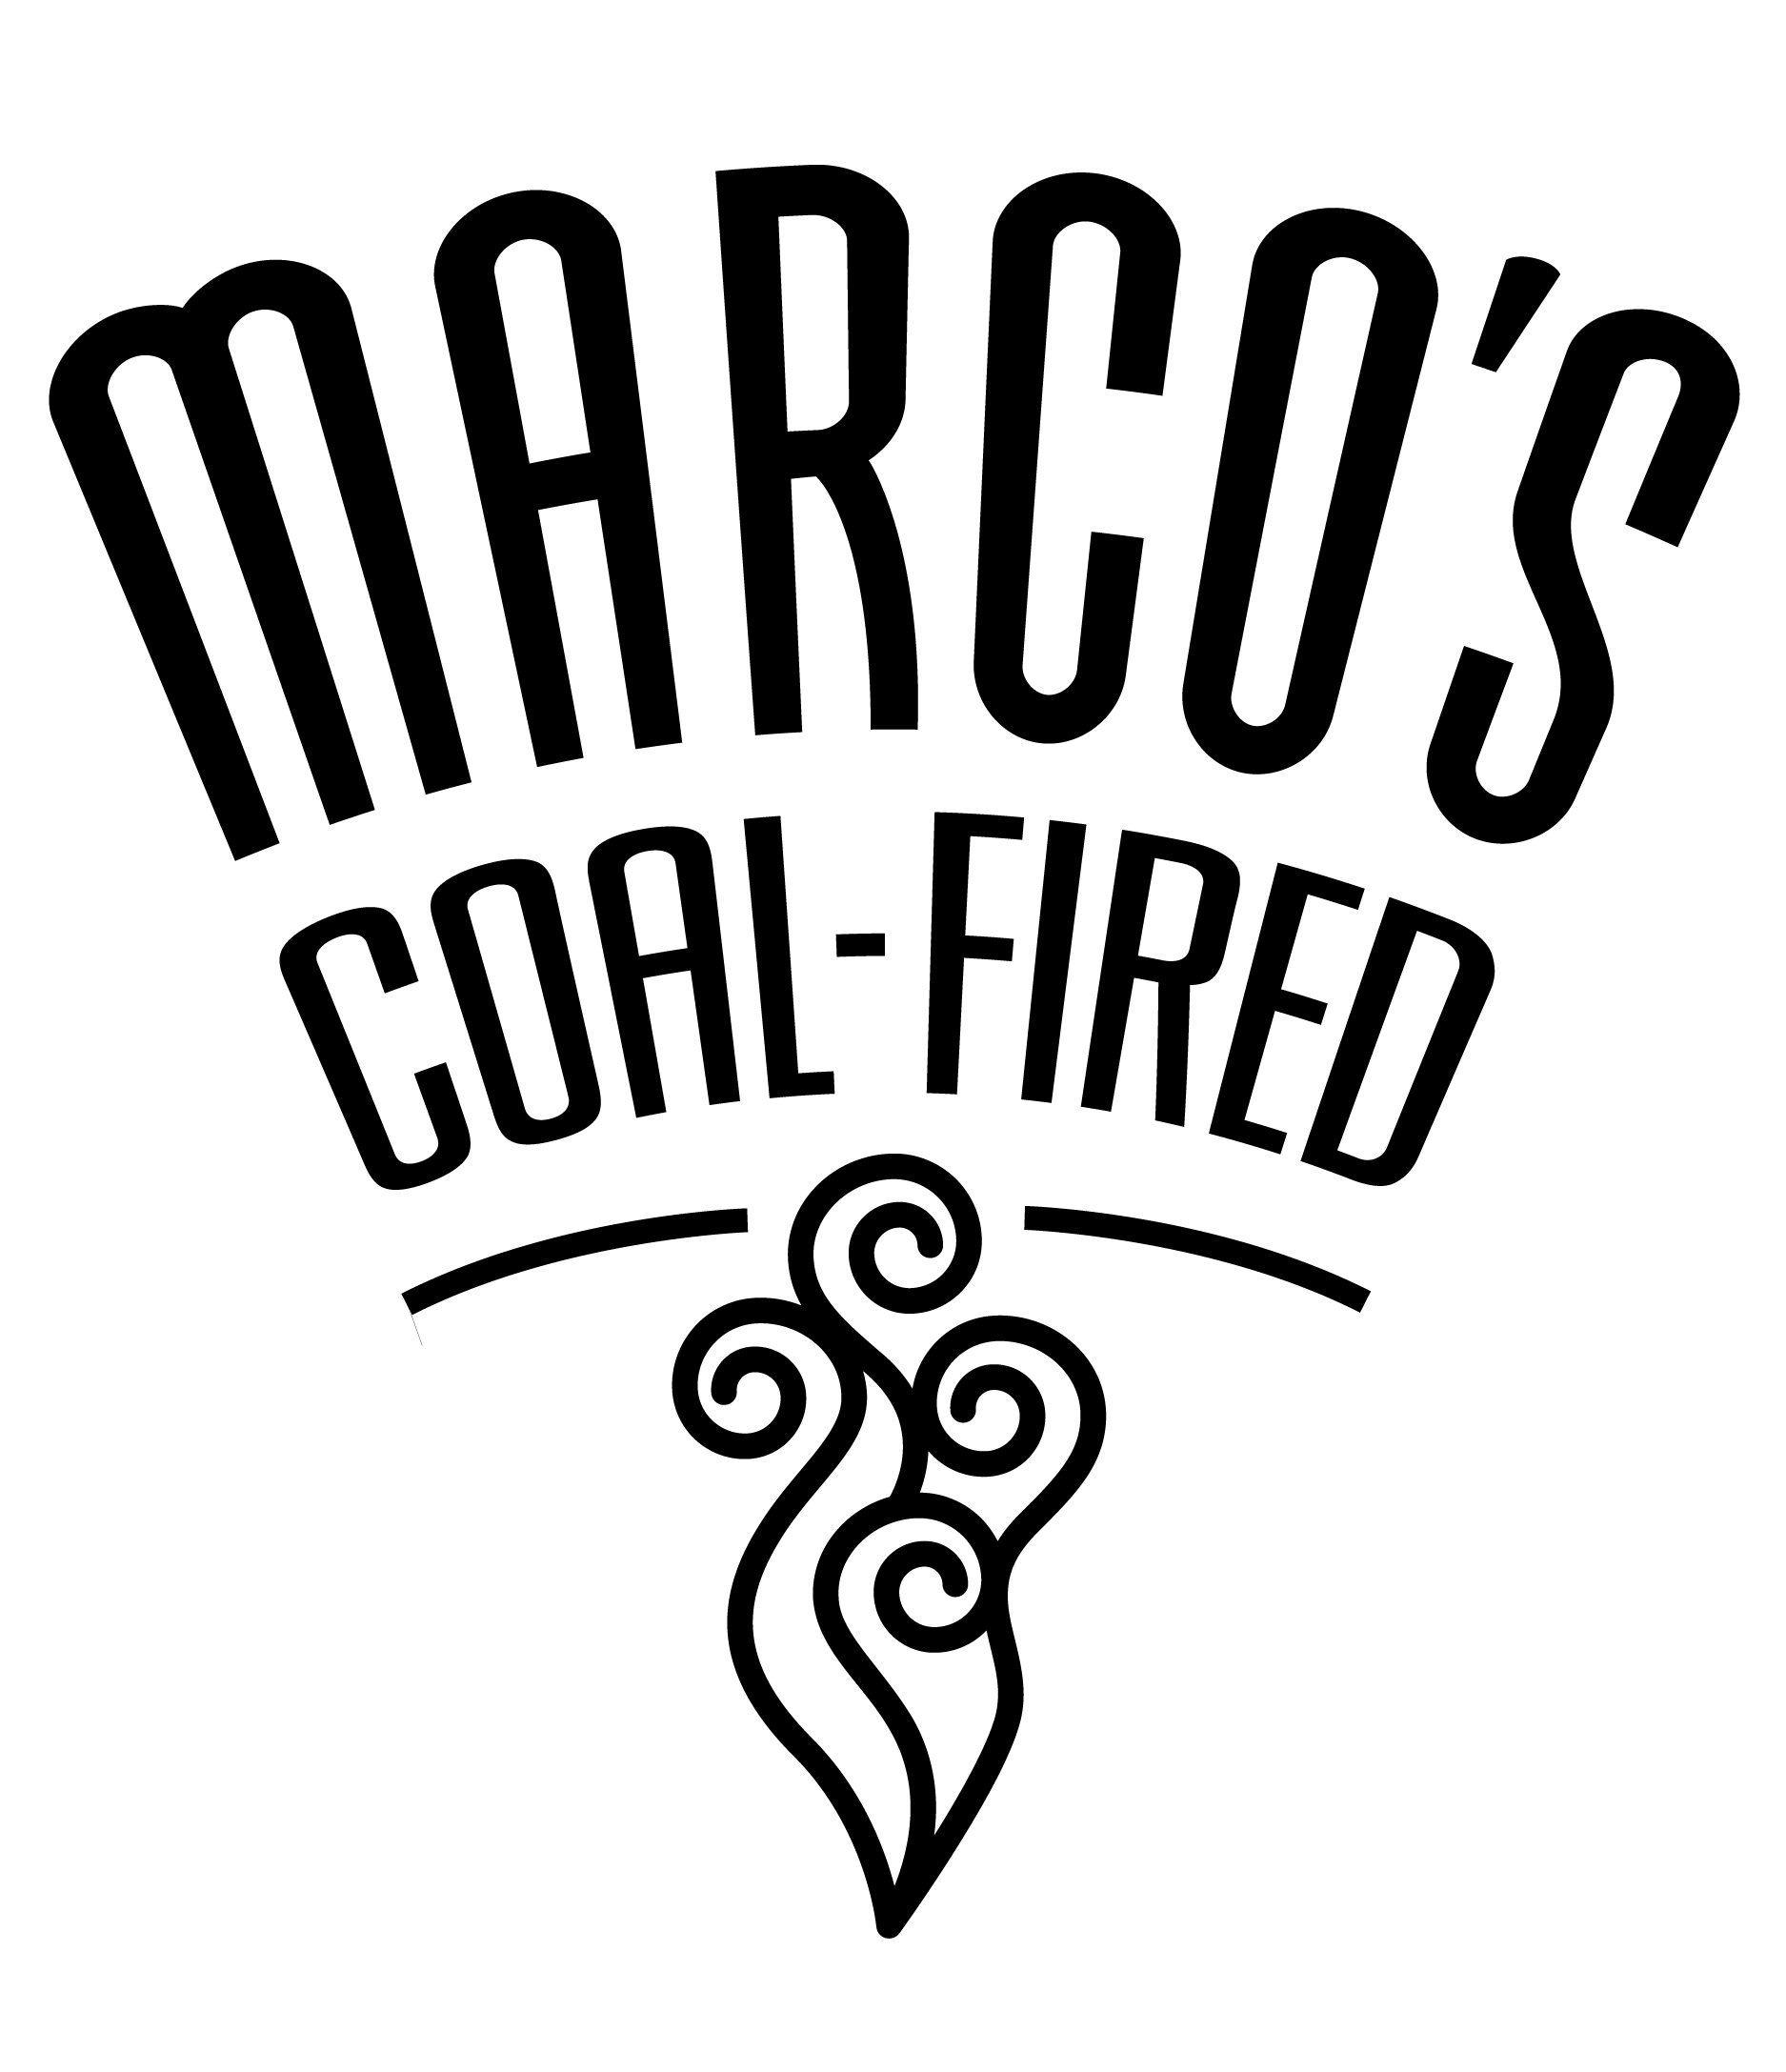 MCFP LOGO ALL BLACK- Marco's Coal Fired-02.png